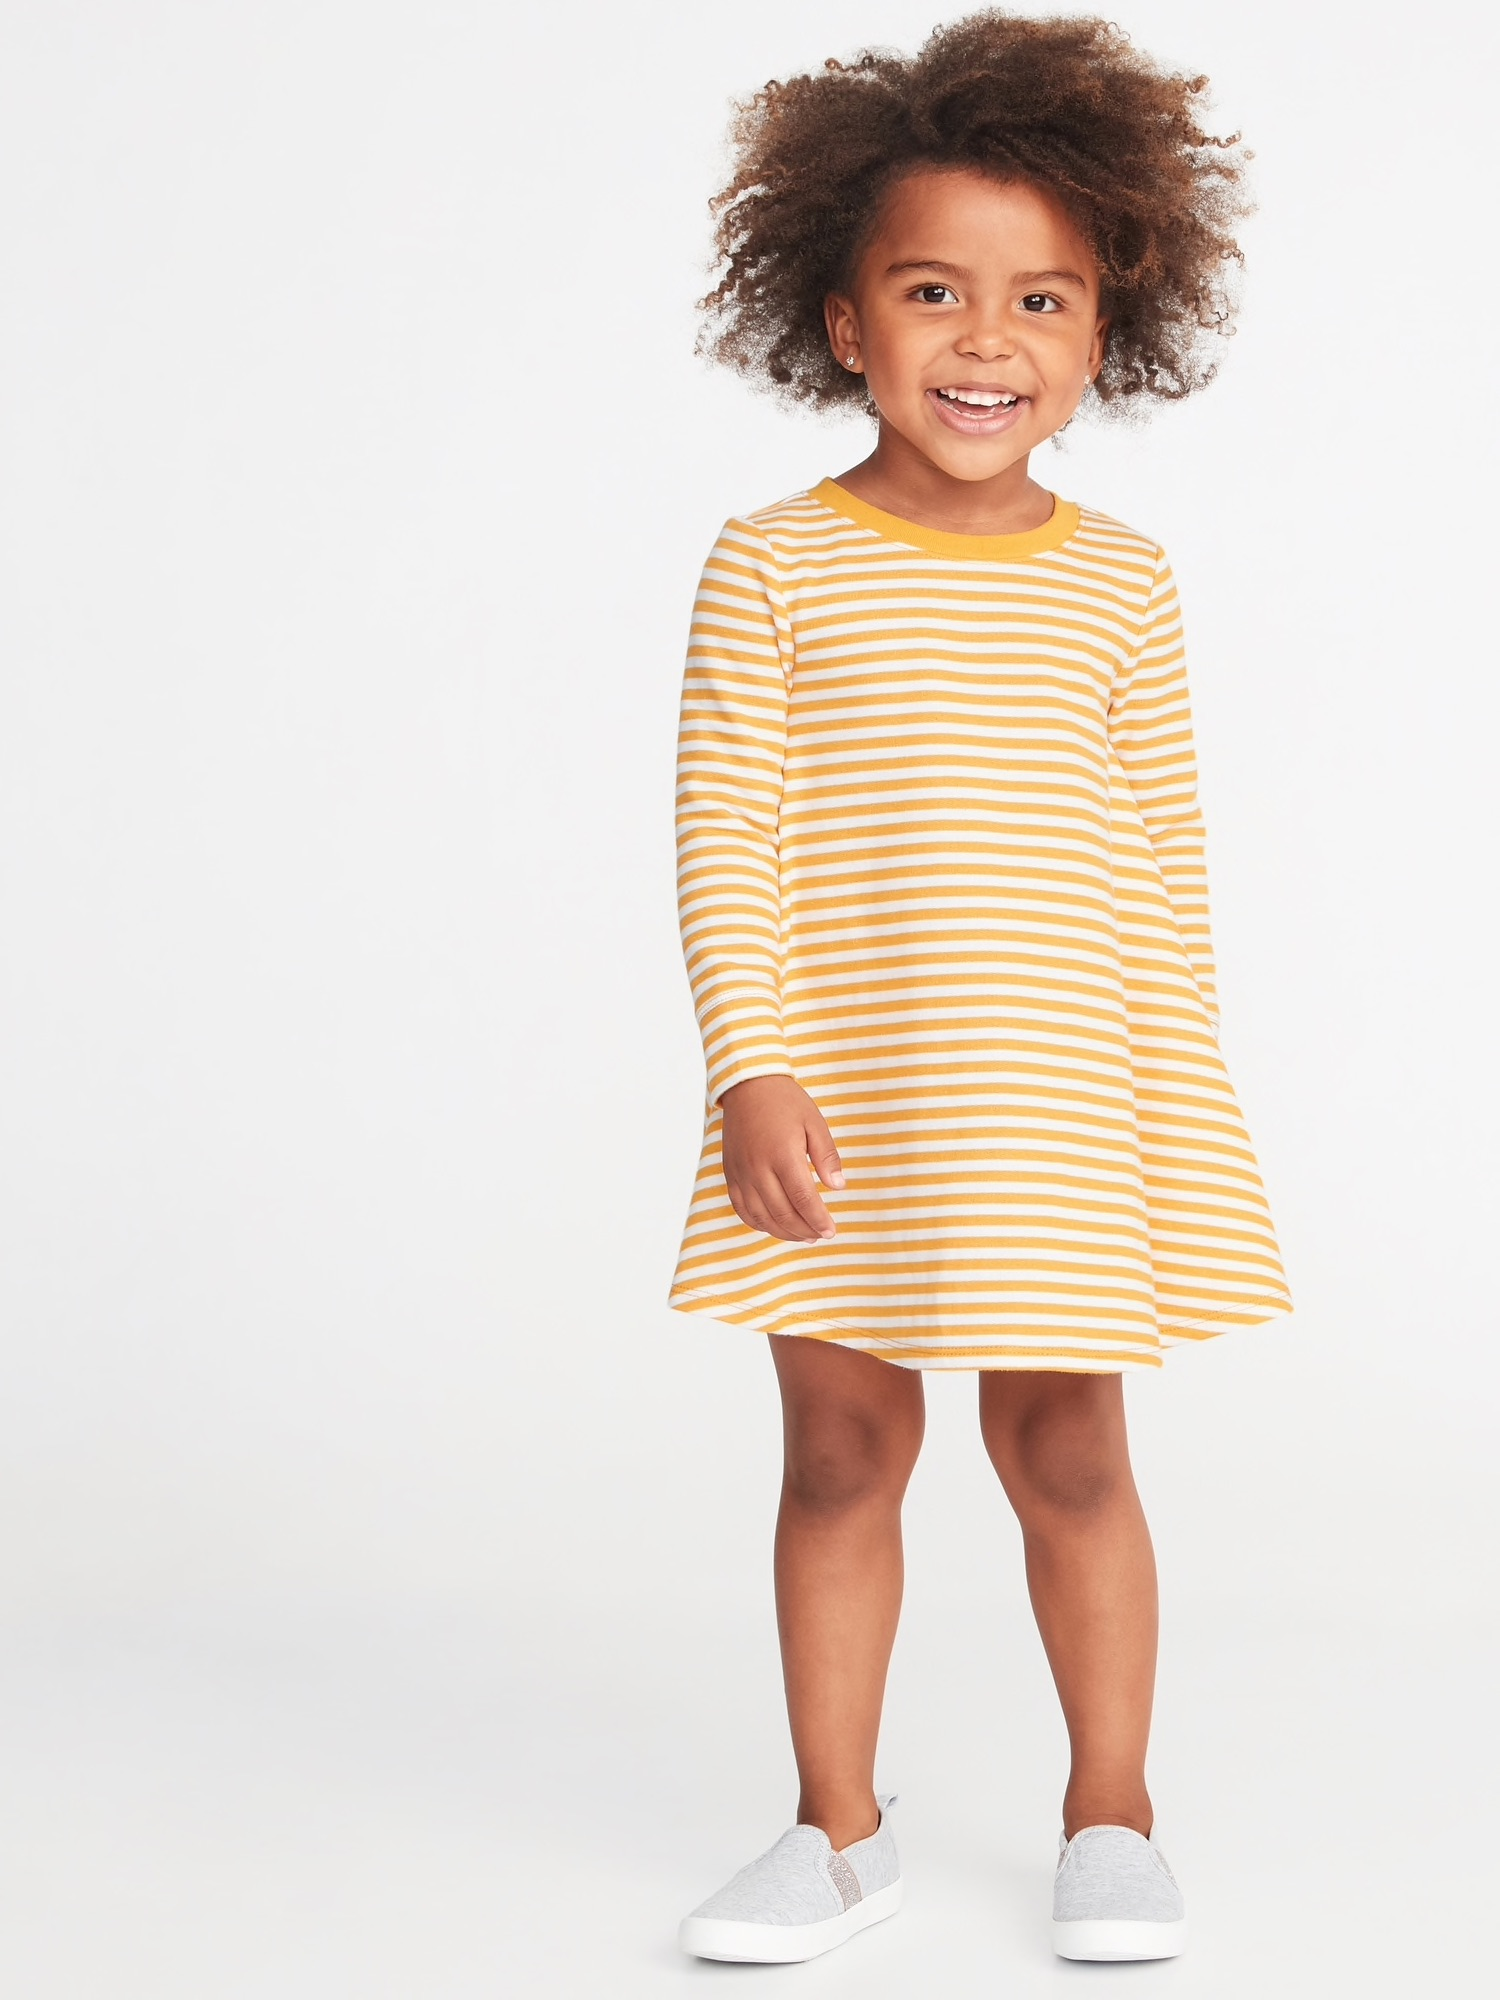 toddler yellow dress.jpg